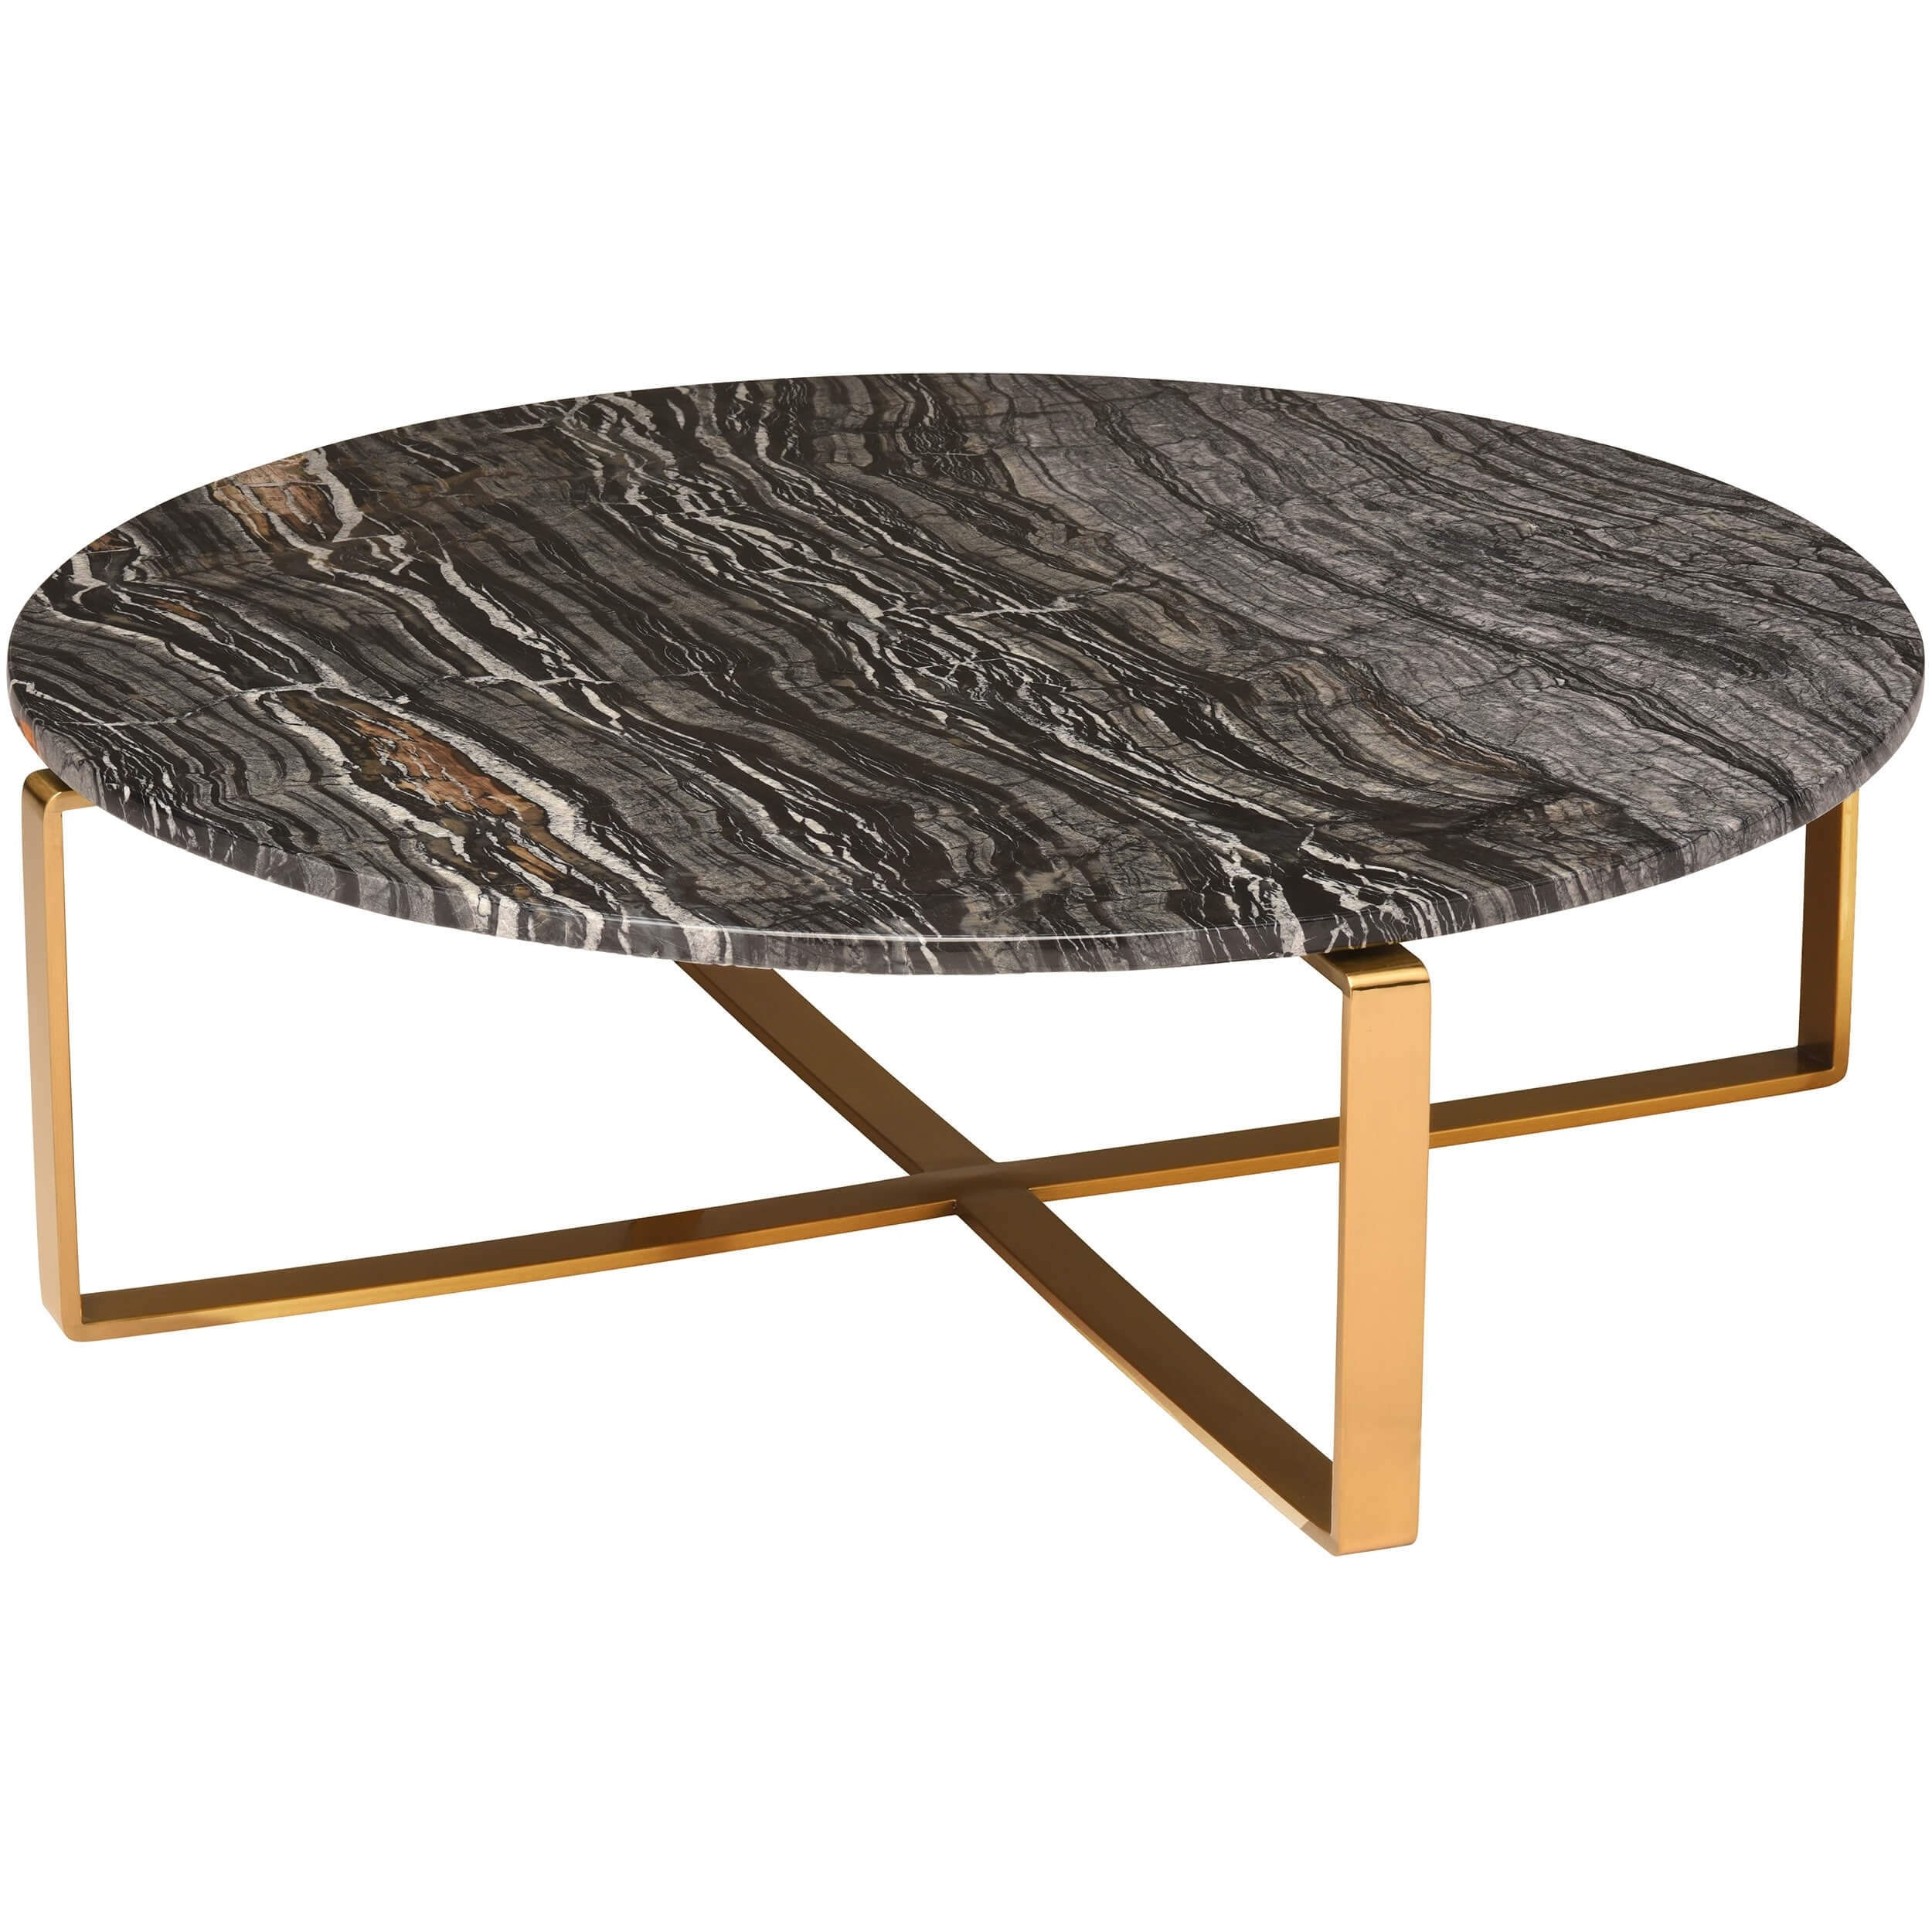 rosa coffee table black gold base tables accent furniture small half circle narrow for space tablecloth inch round patio with ice bucket mirimyn steel trestle white moon console